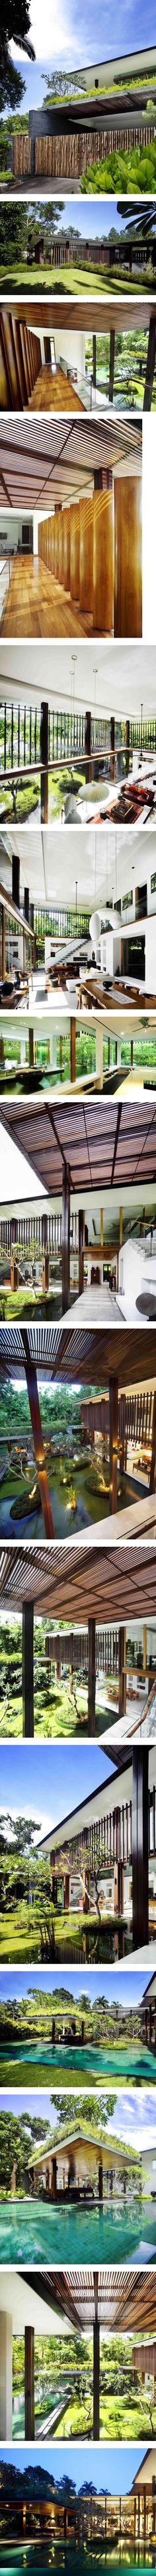 Sun House in Singapore by Guz Architects